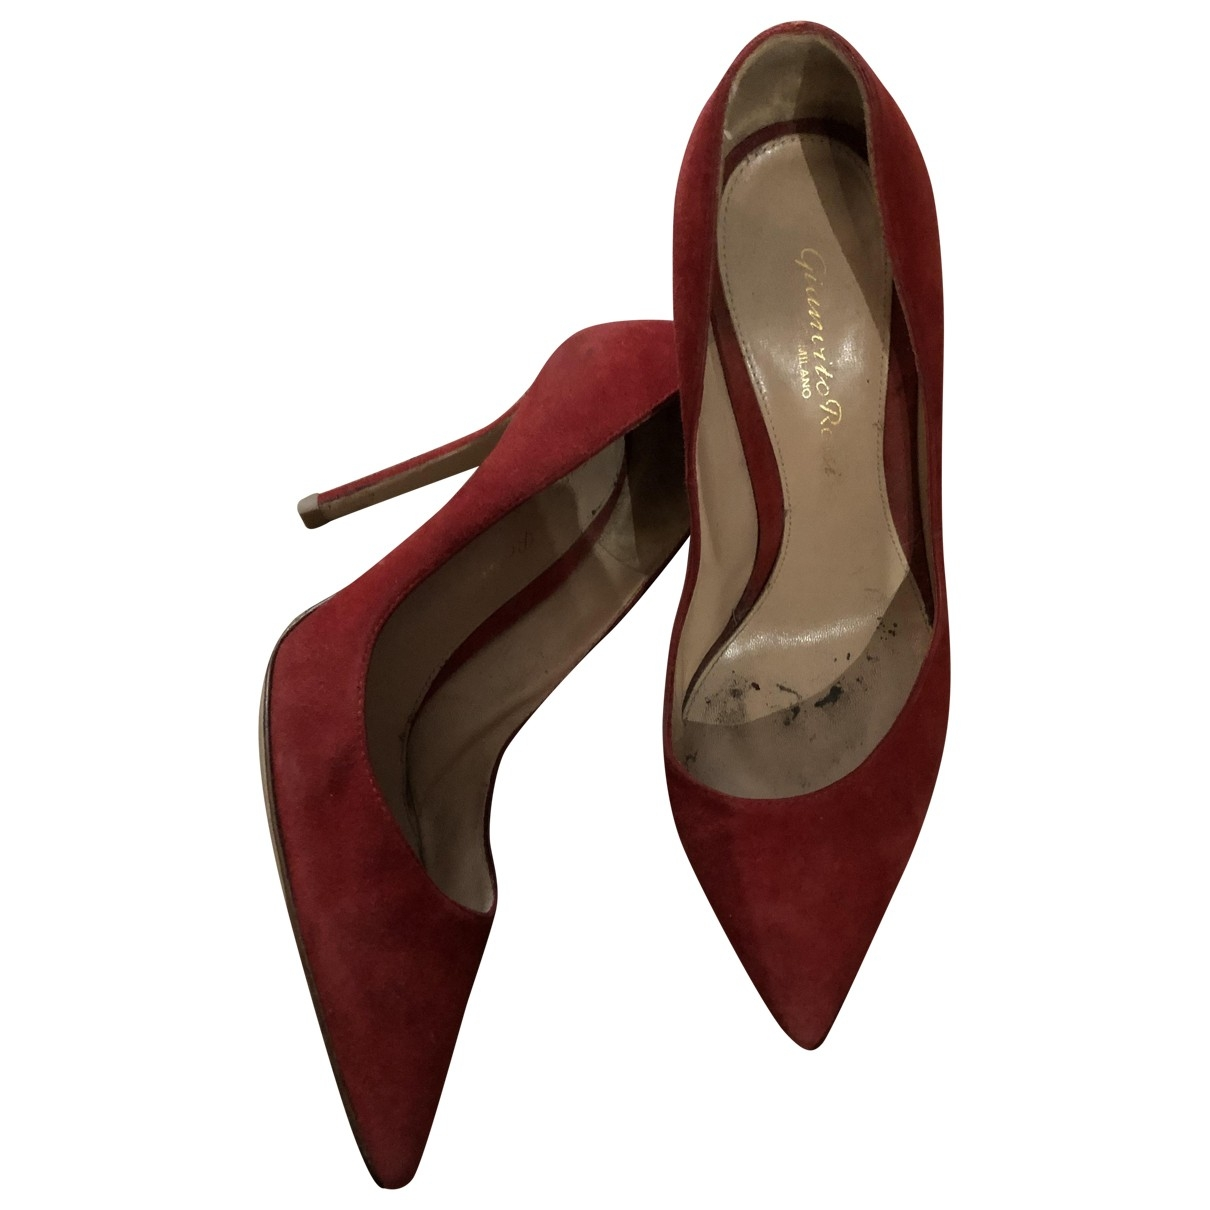 Gianvito Rossi Gianvito Red Suede Heels for Women 36 EU